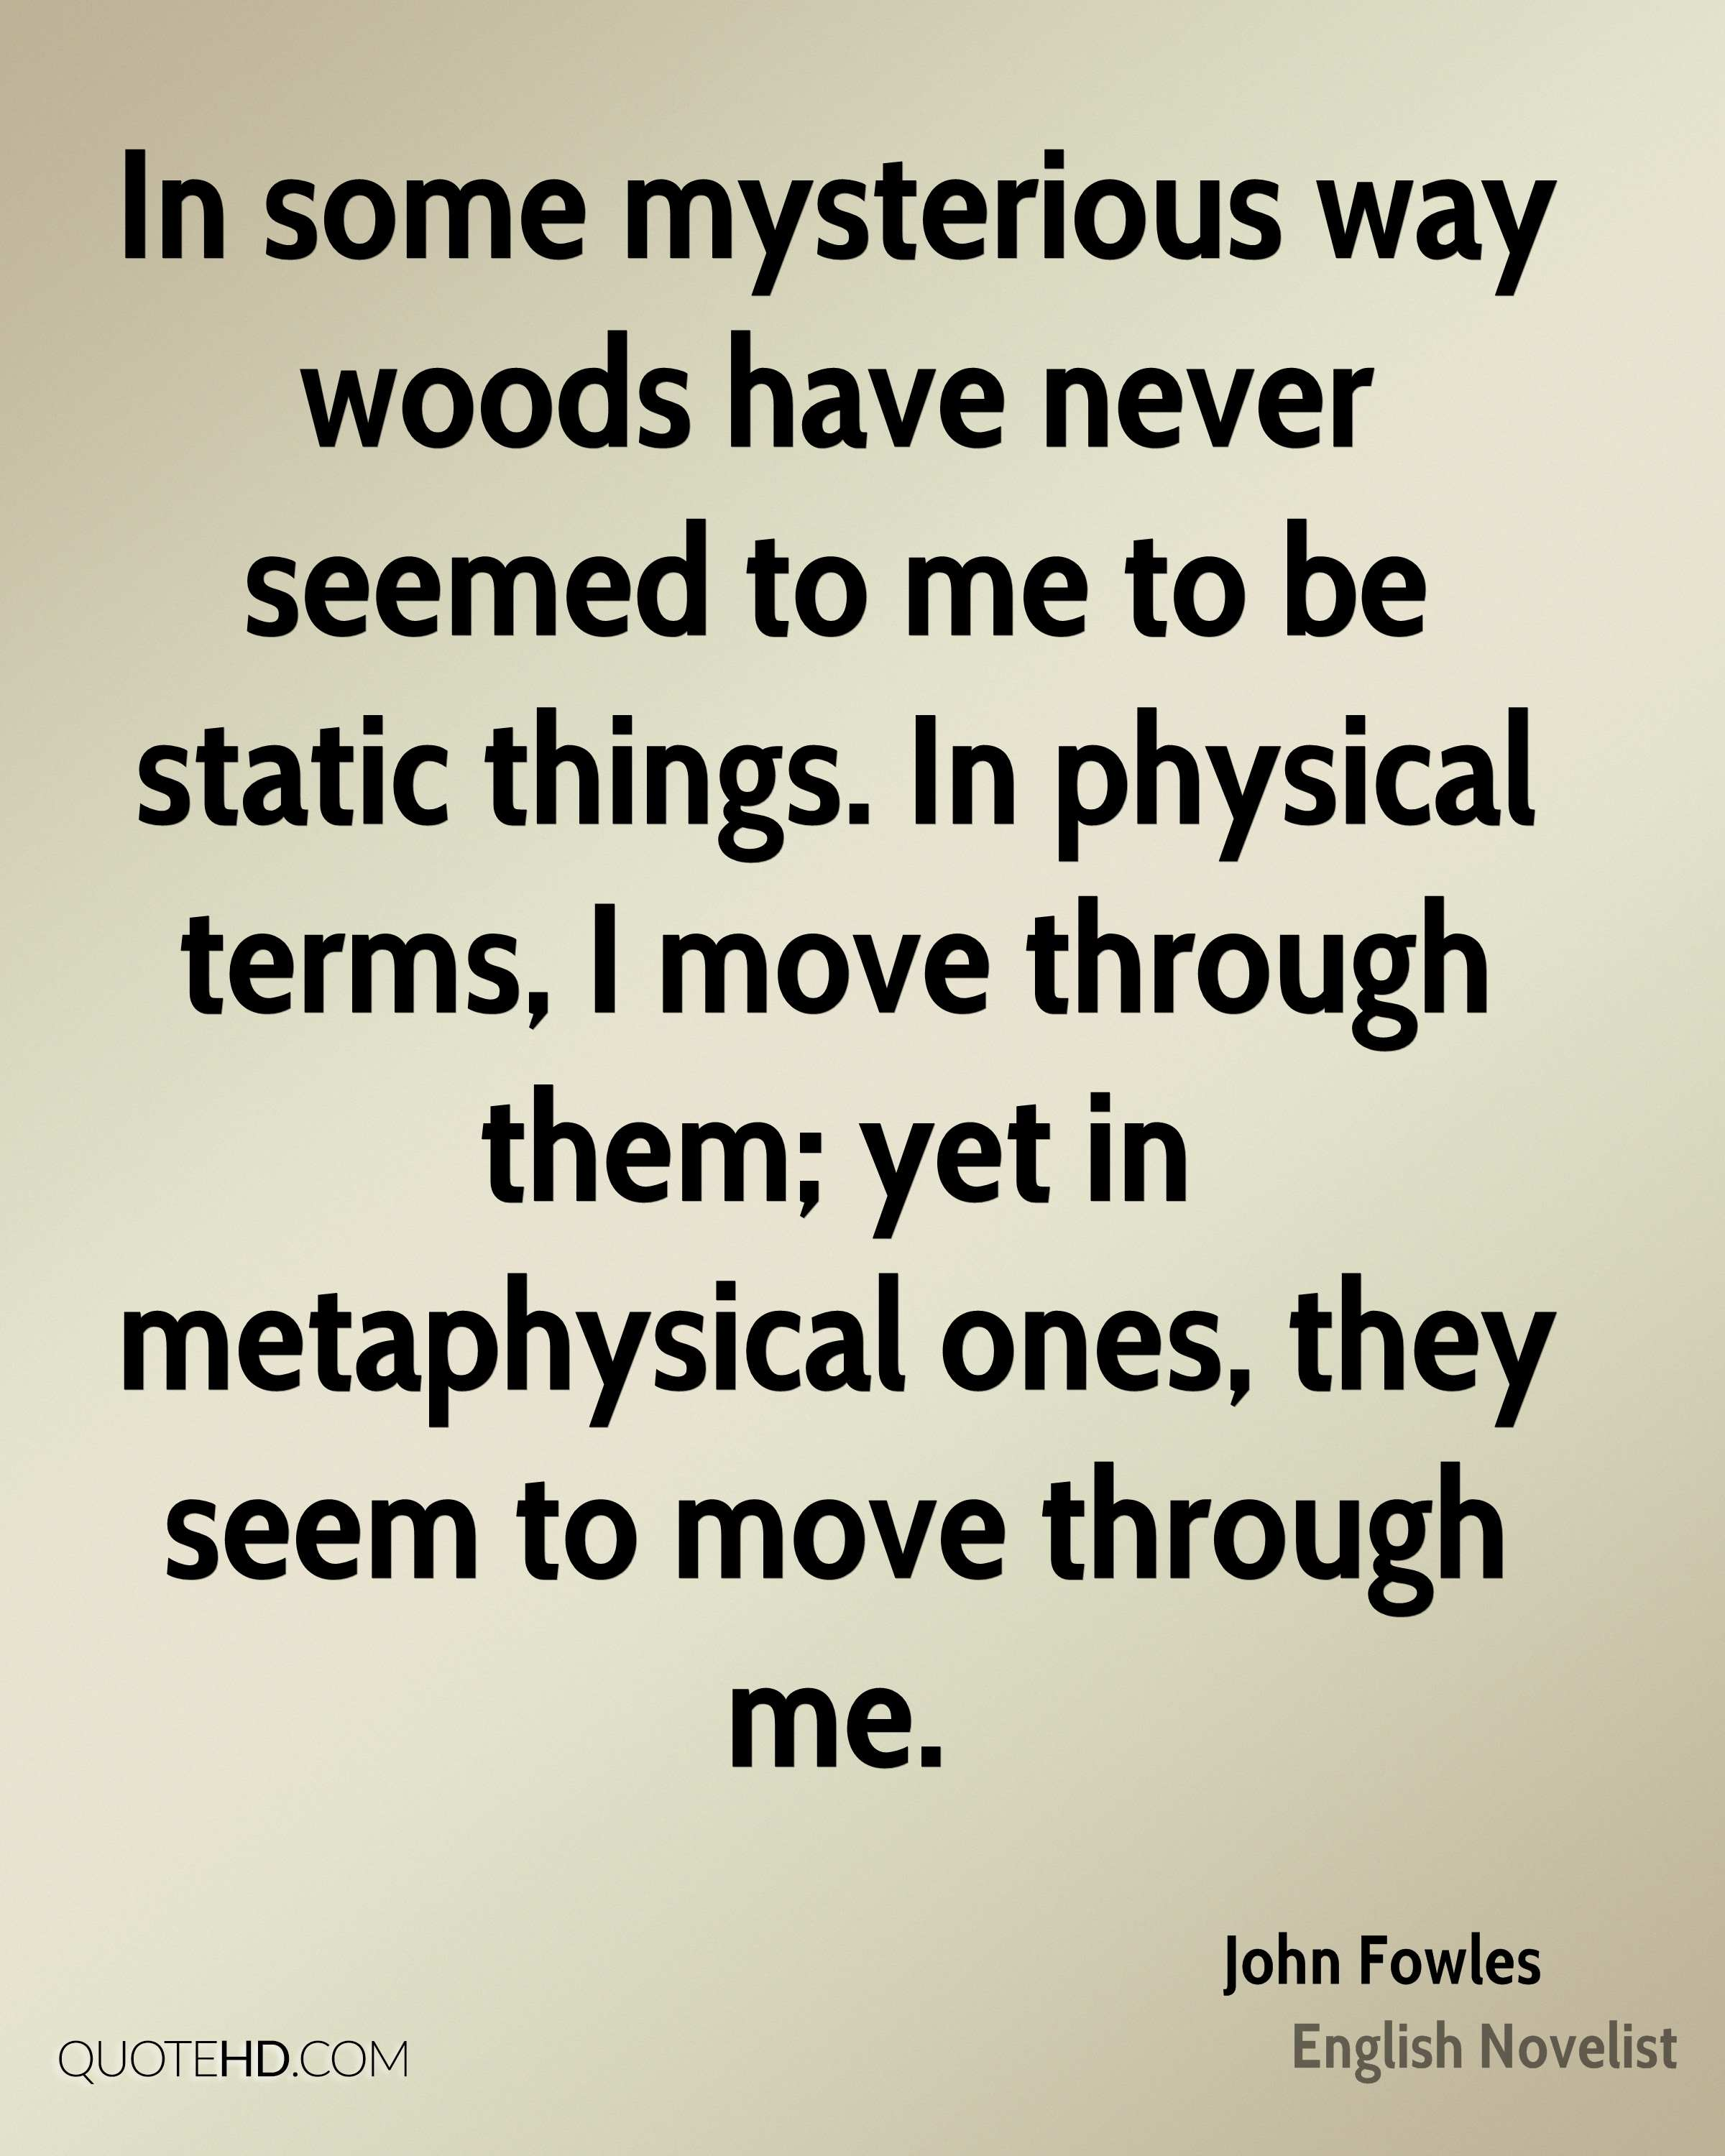 In some mysterious way woods have never seemed to me to be static things. In physical terms, I move through them; yet in metaphysical ones, they seem to move through me.